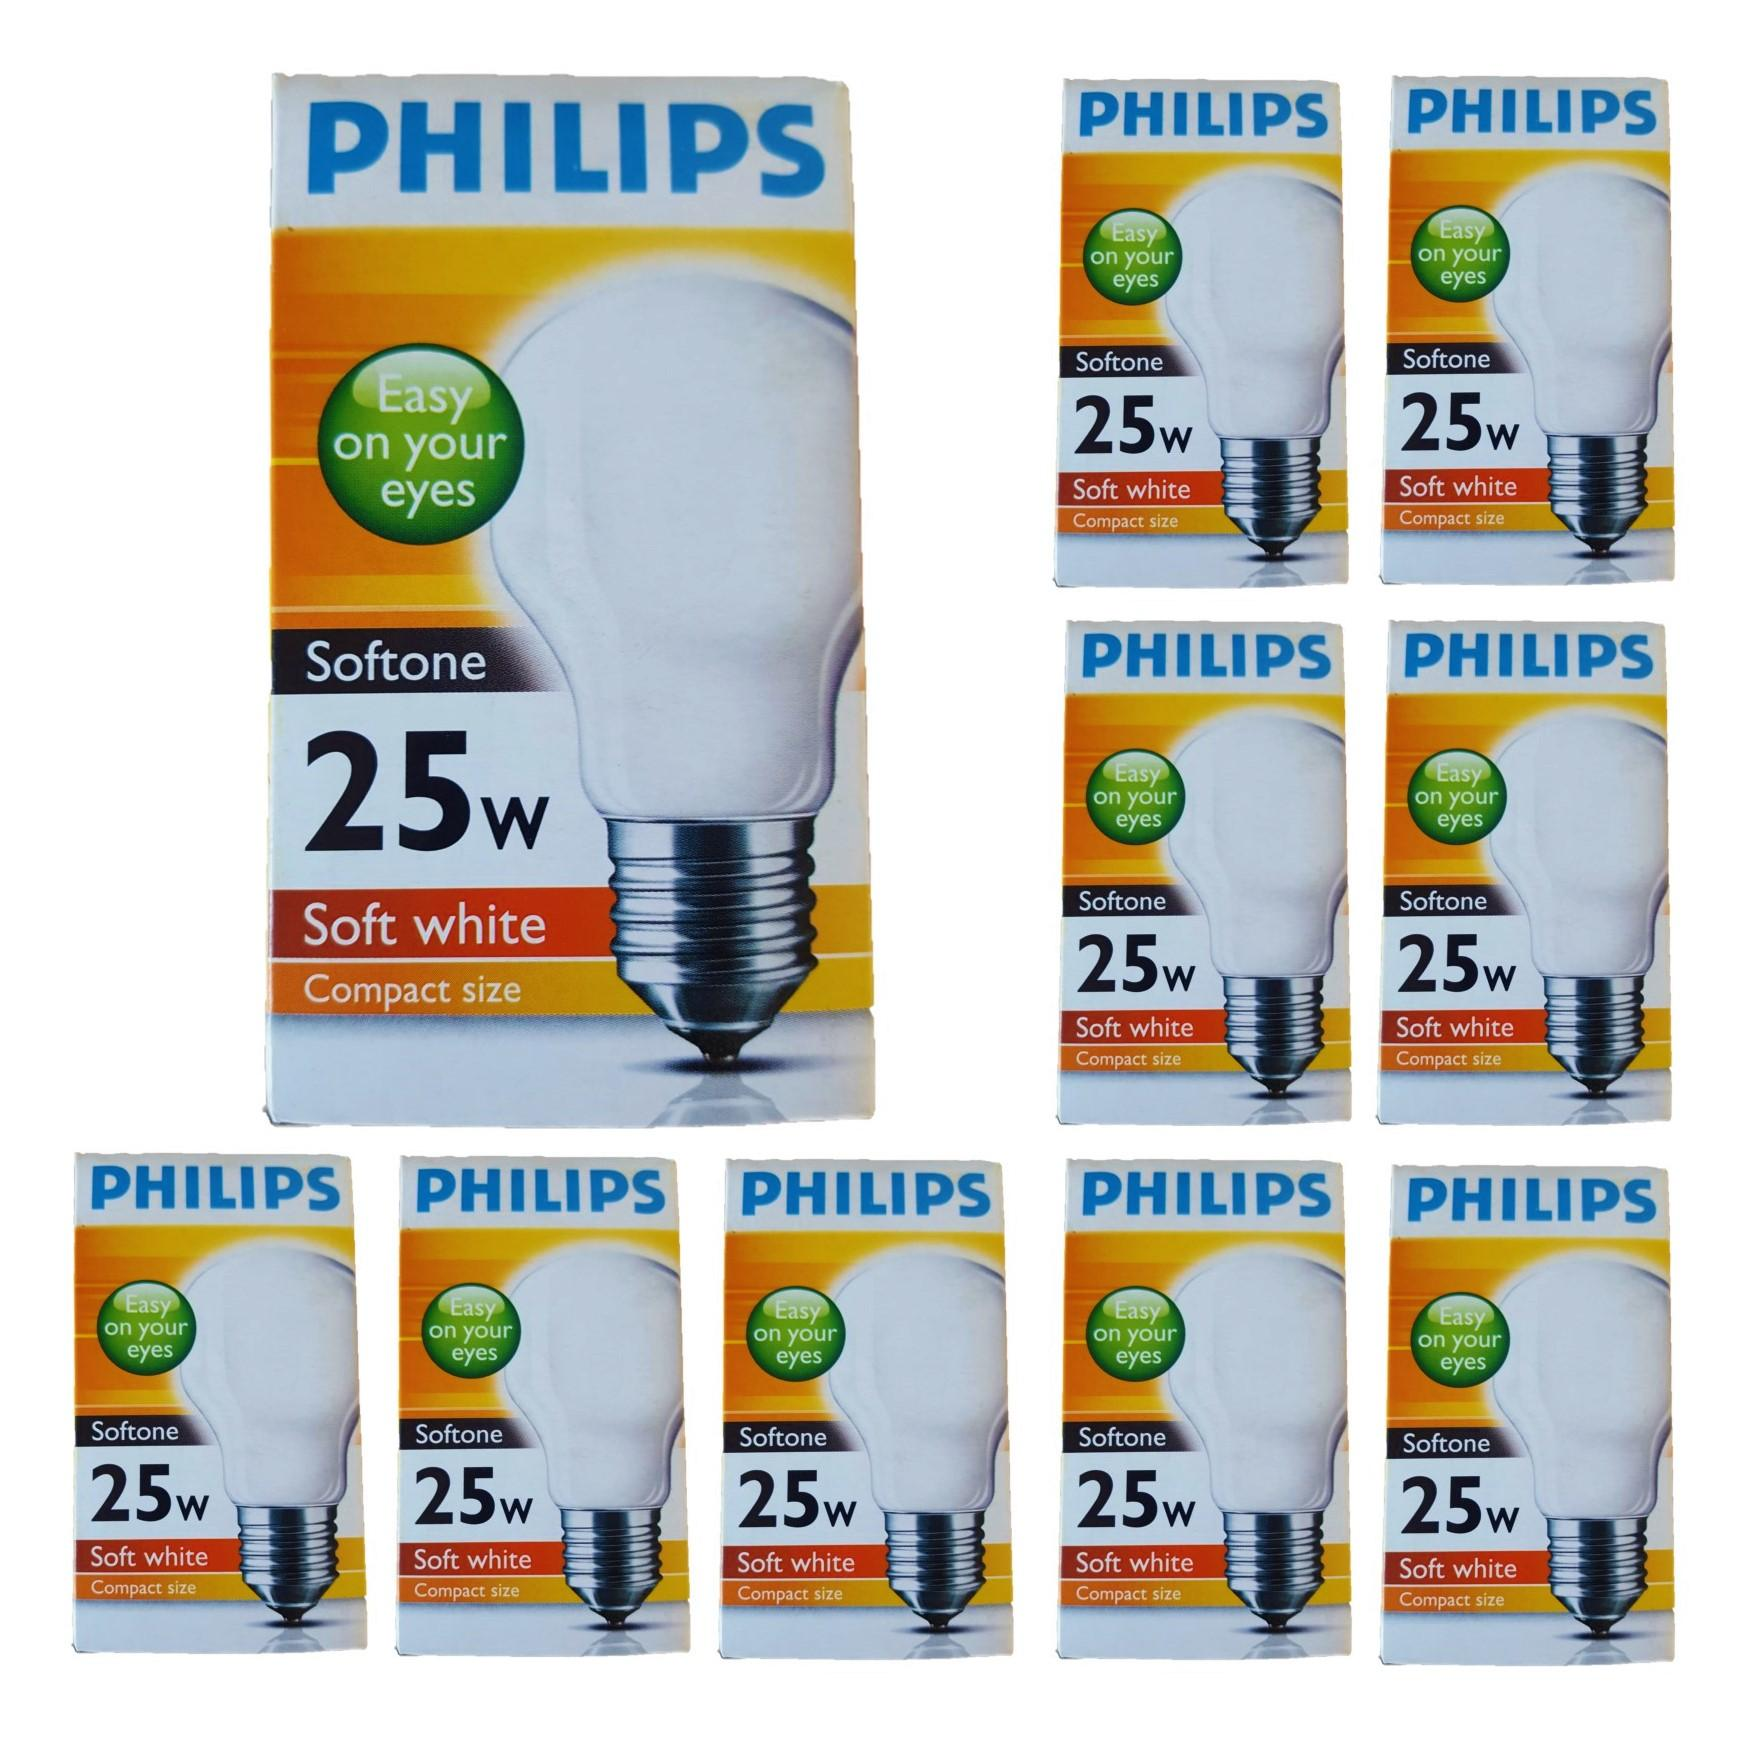 Philips Softone Flame Light Bulbs Buy Light Bulbs At Best Price In Philippines Www